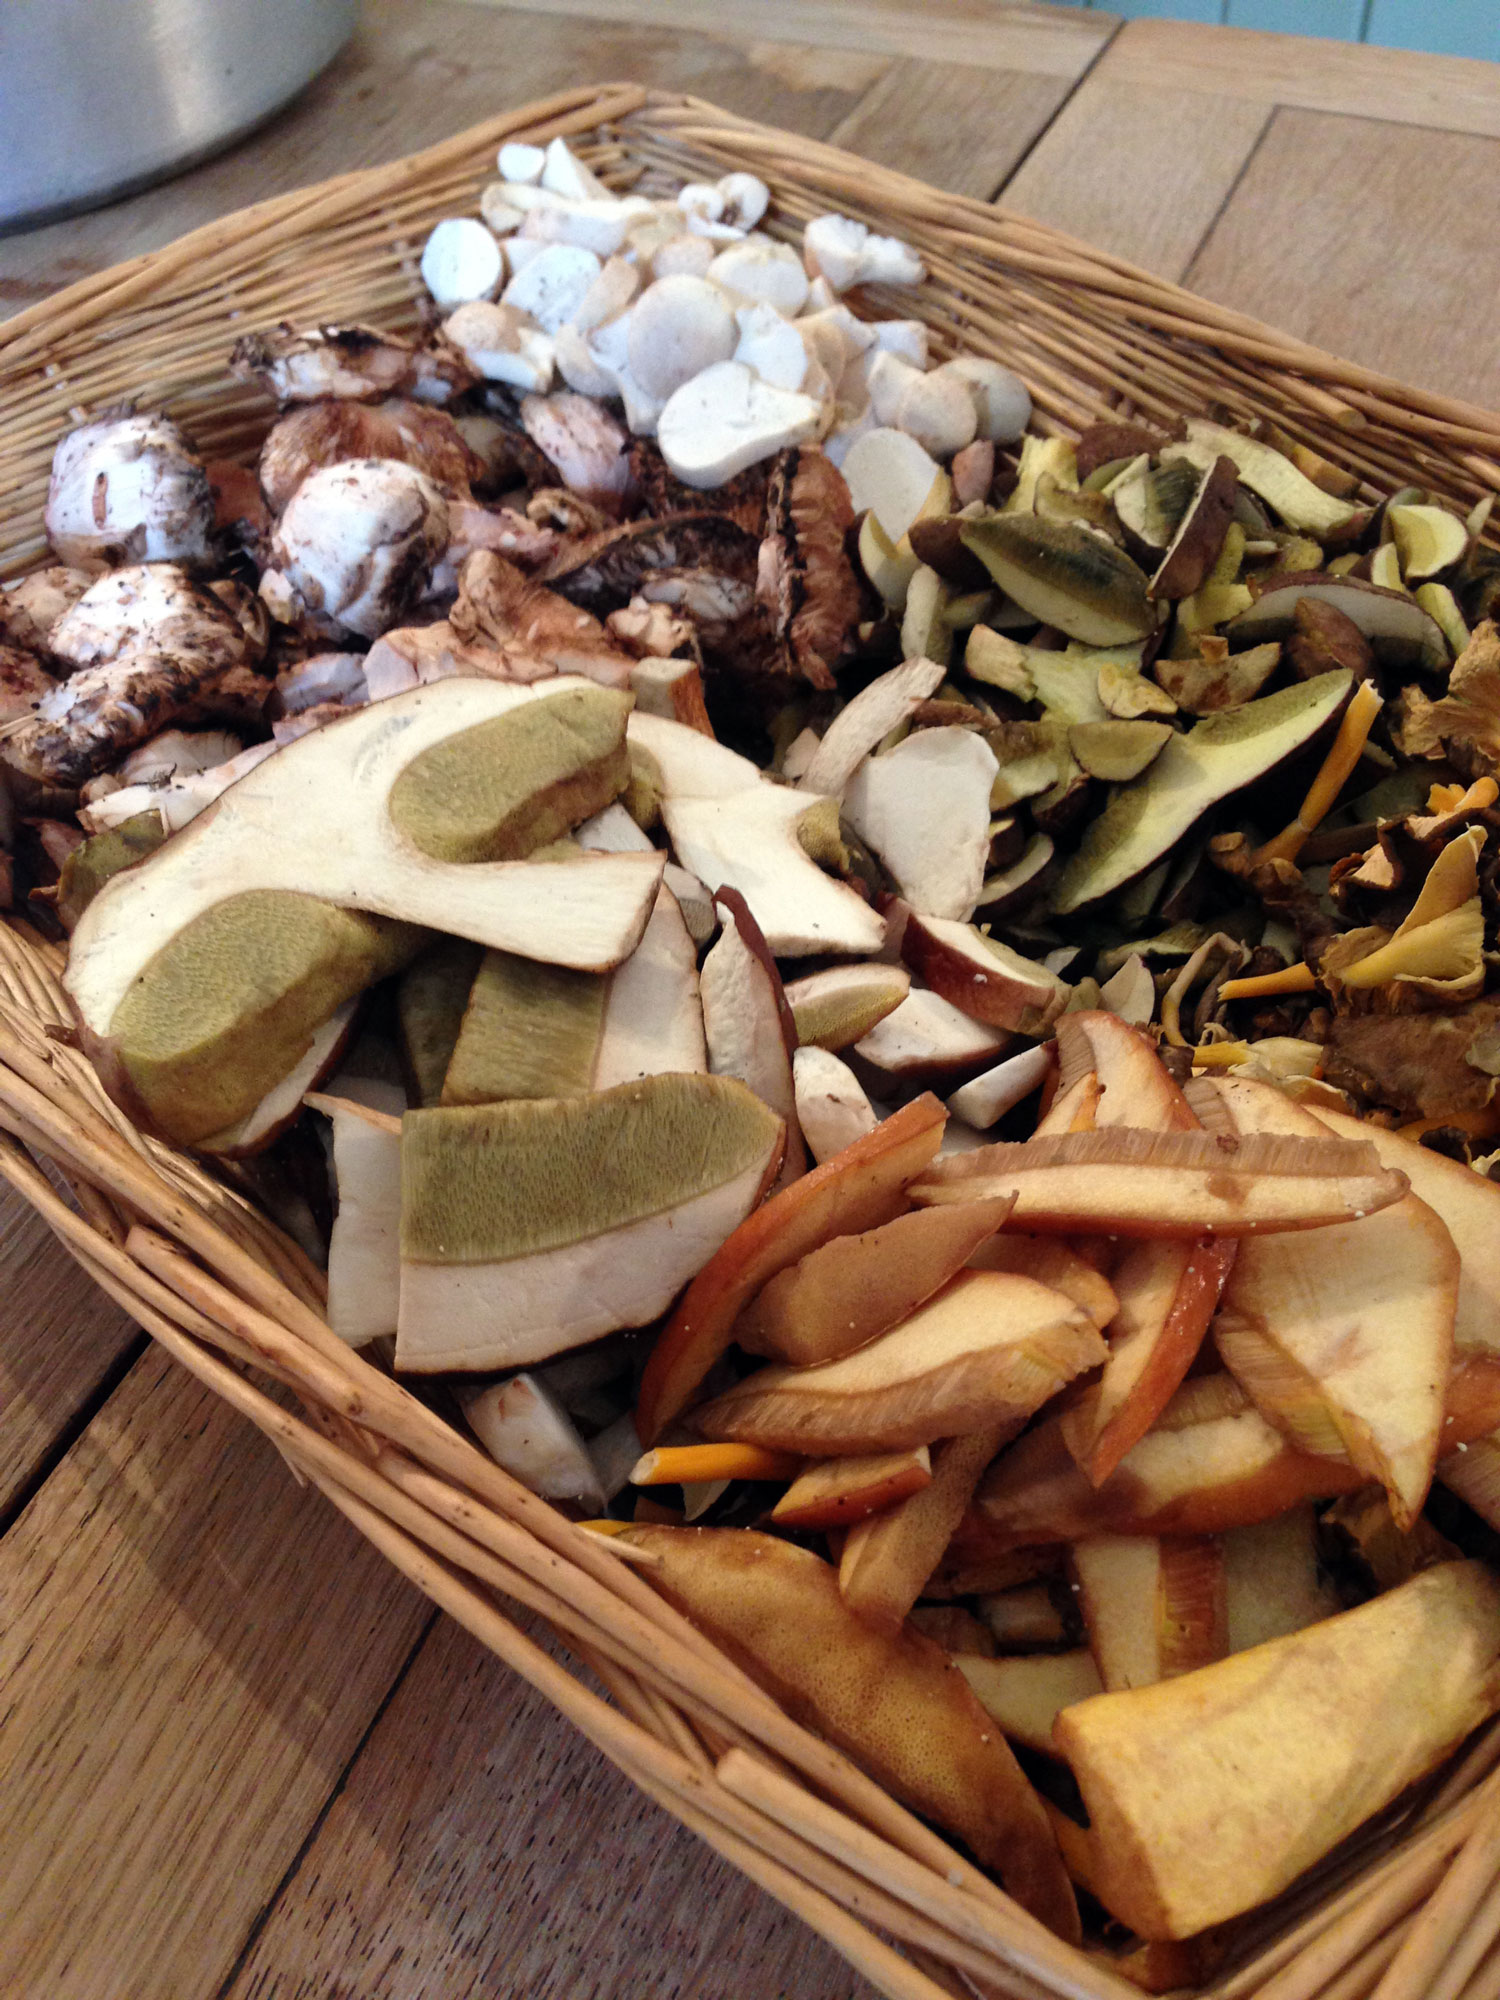 foraging-uk-working-clockwise-from-top-puffballs-bay-boletes-winter-chanterelles-larch-boletes-penny-buns-parasol-mushrooms